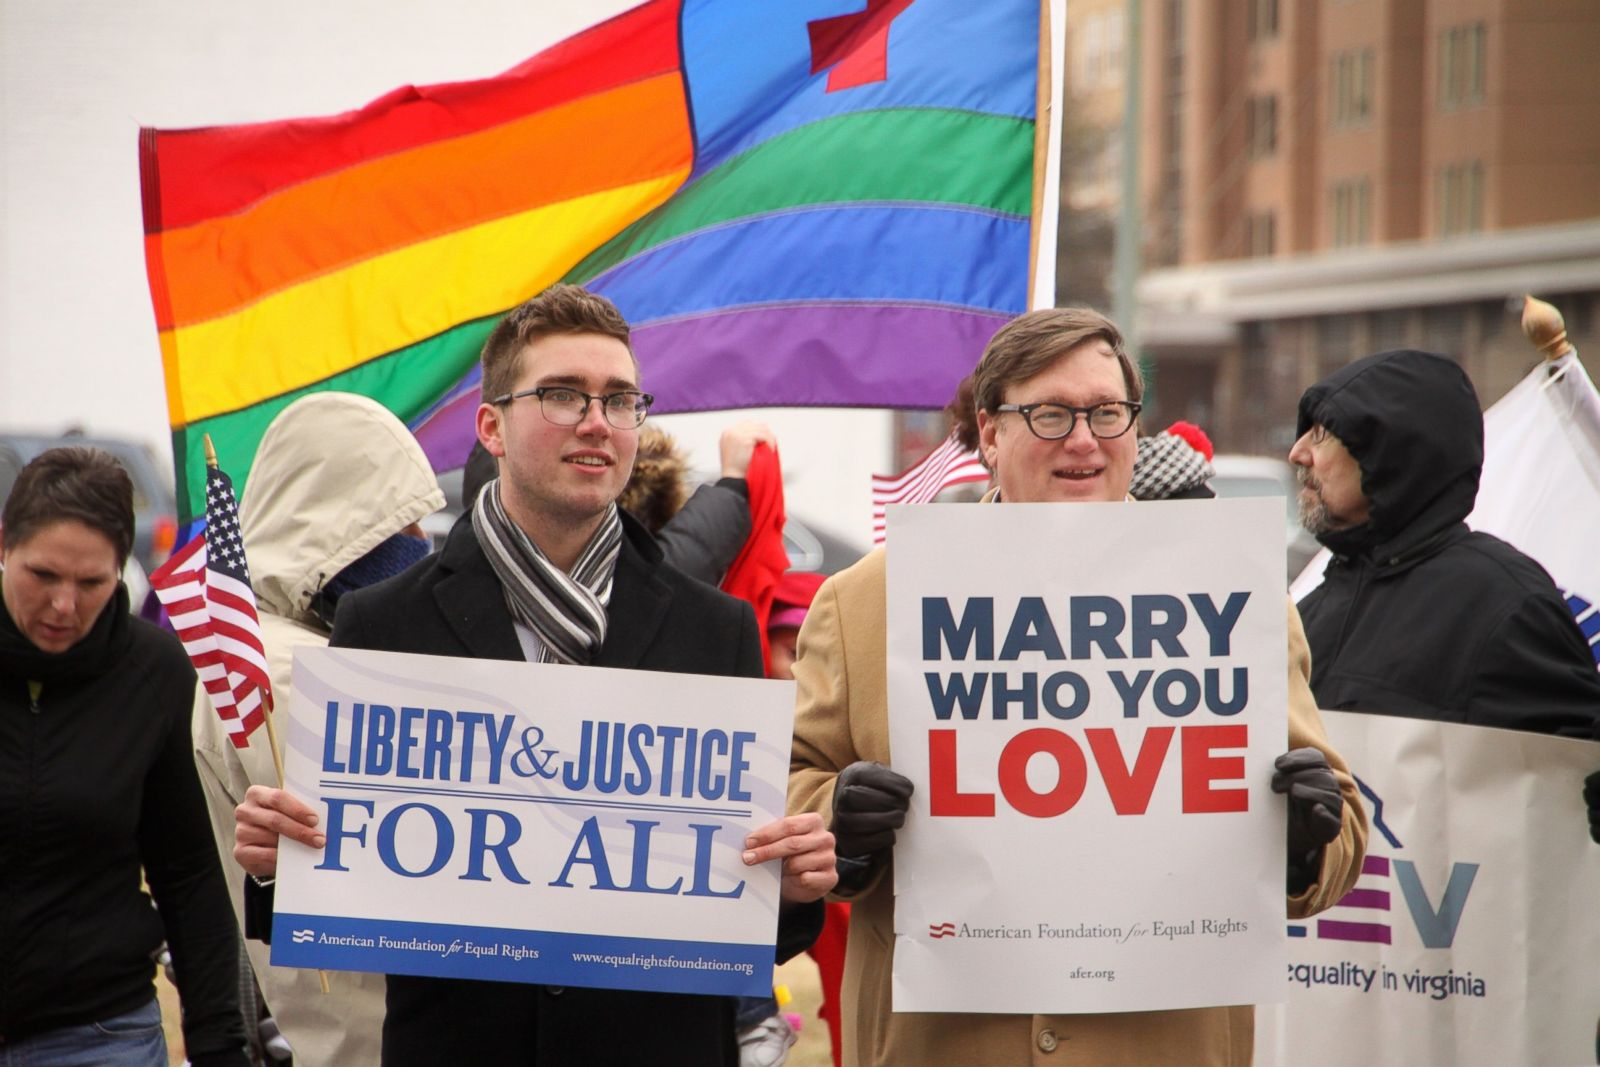 Two men staying with posters about Marriage Rights for LGBTQ couples